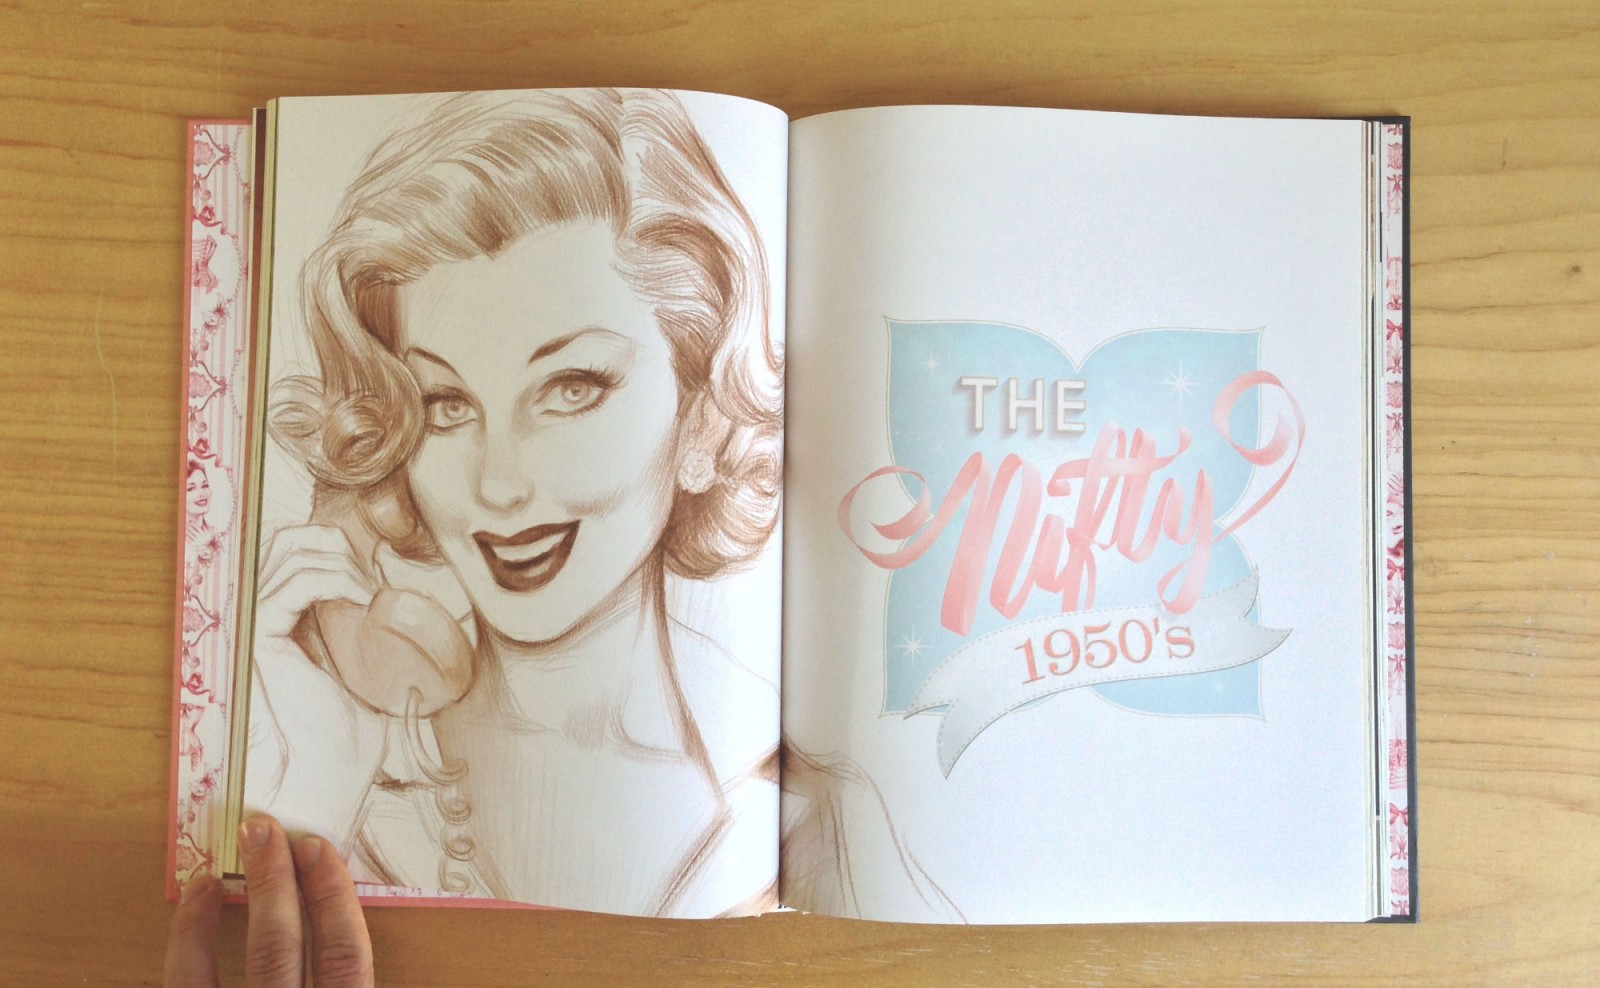 MALY-50s-TheNifty-book